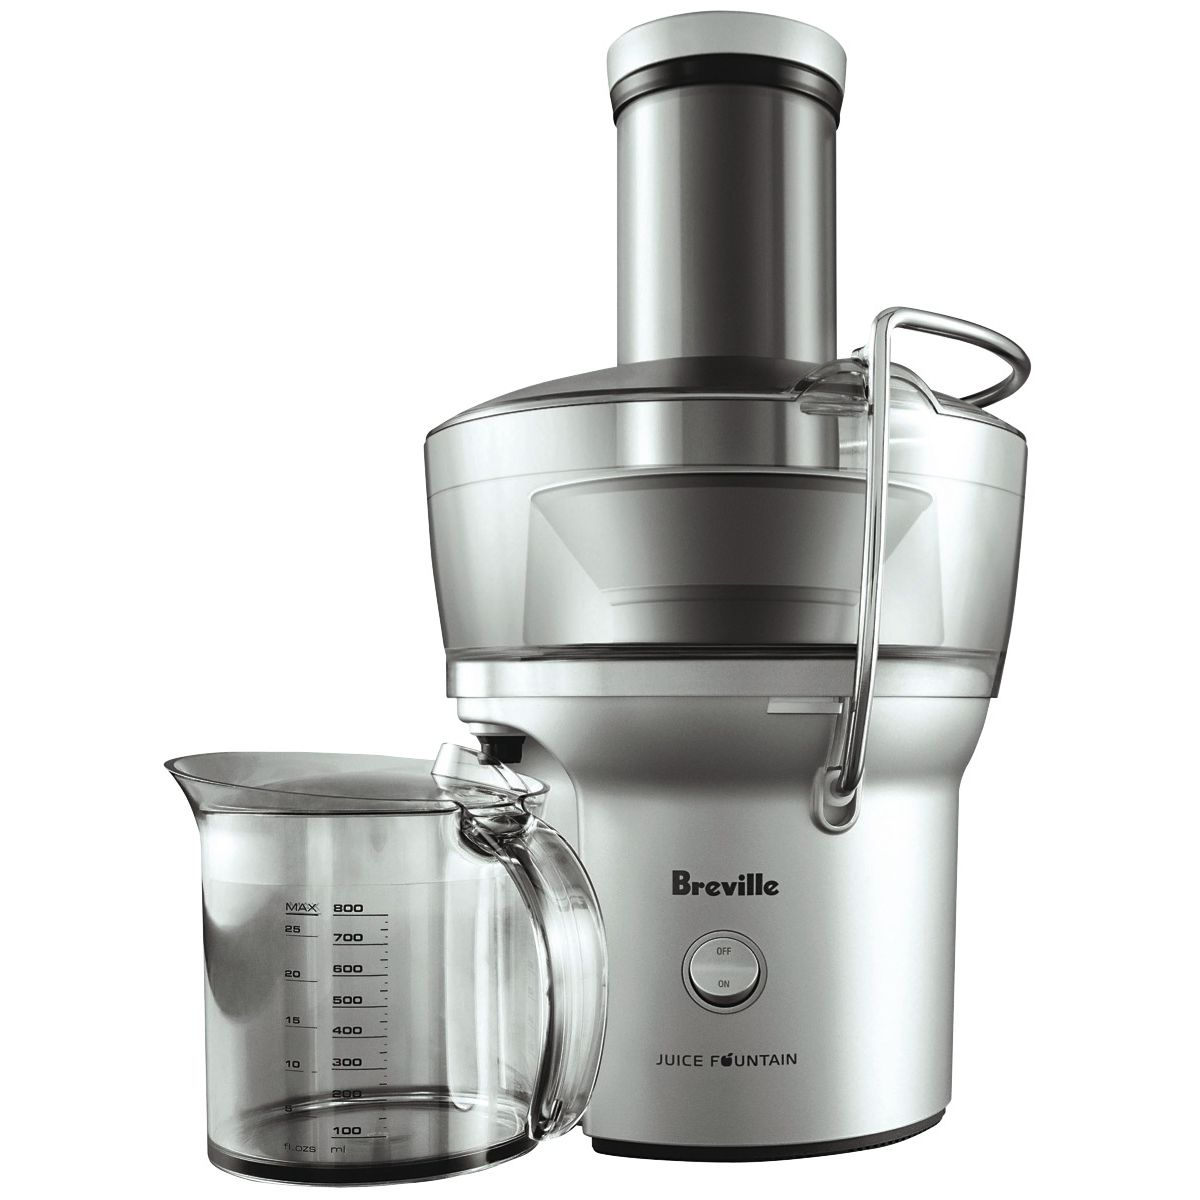 Shop Online for Breville BJE200 Breville Juice Fountain 900W